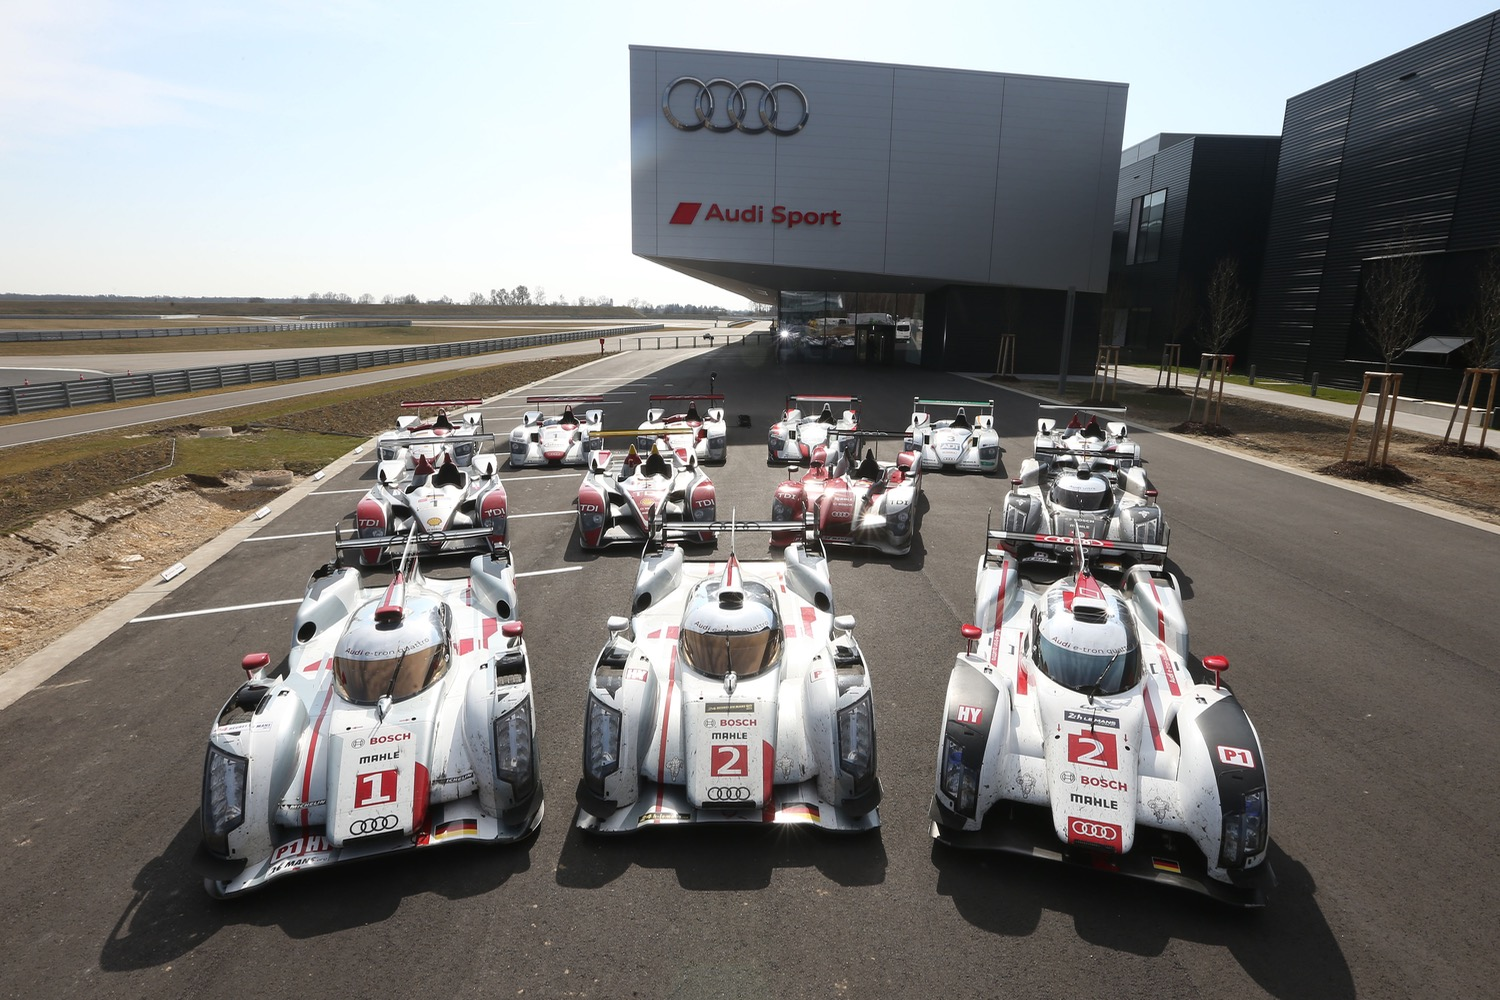 After Years Audi Will No Longer Race At The Hours Of Le Mans